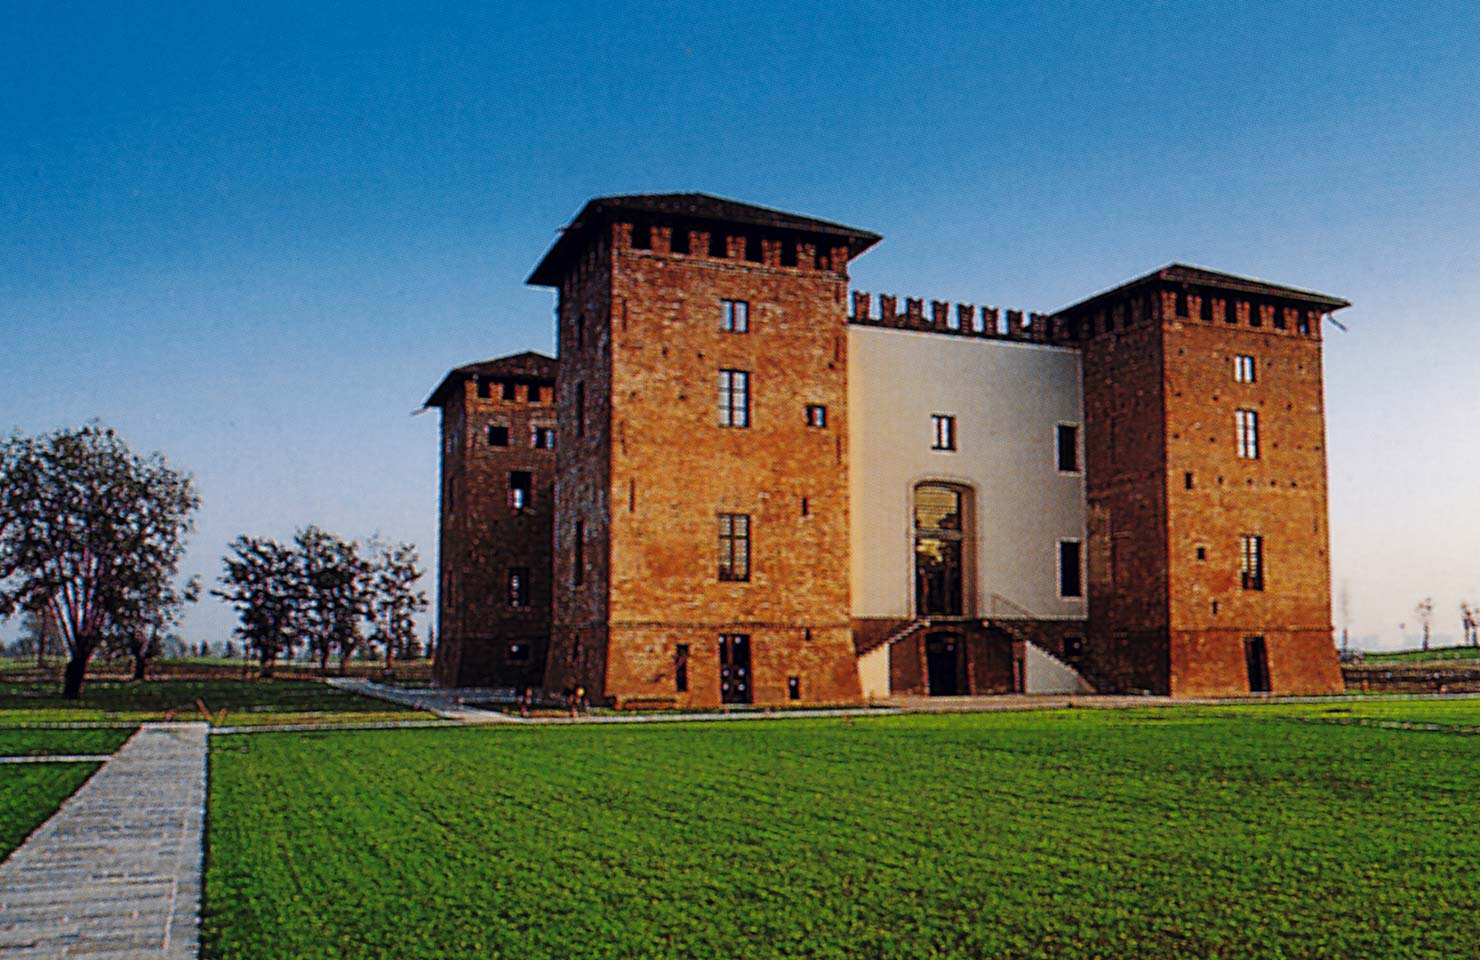 Restoration of the urban complex Talcinasco castle and farmhouse